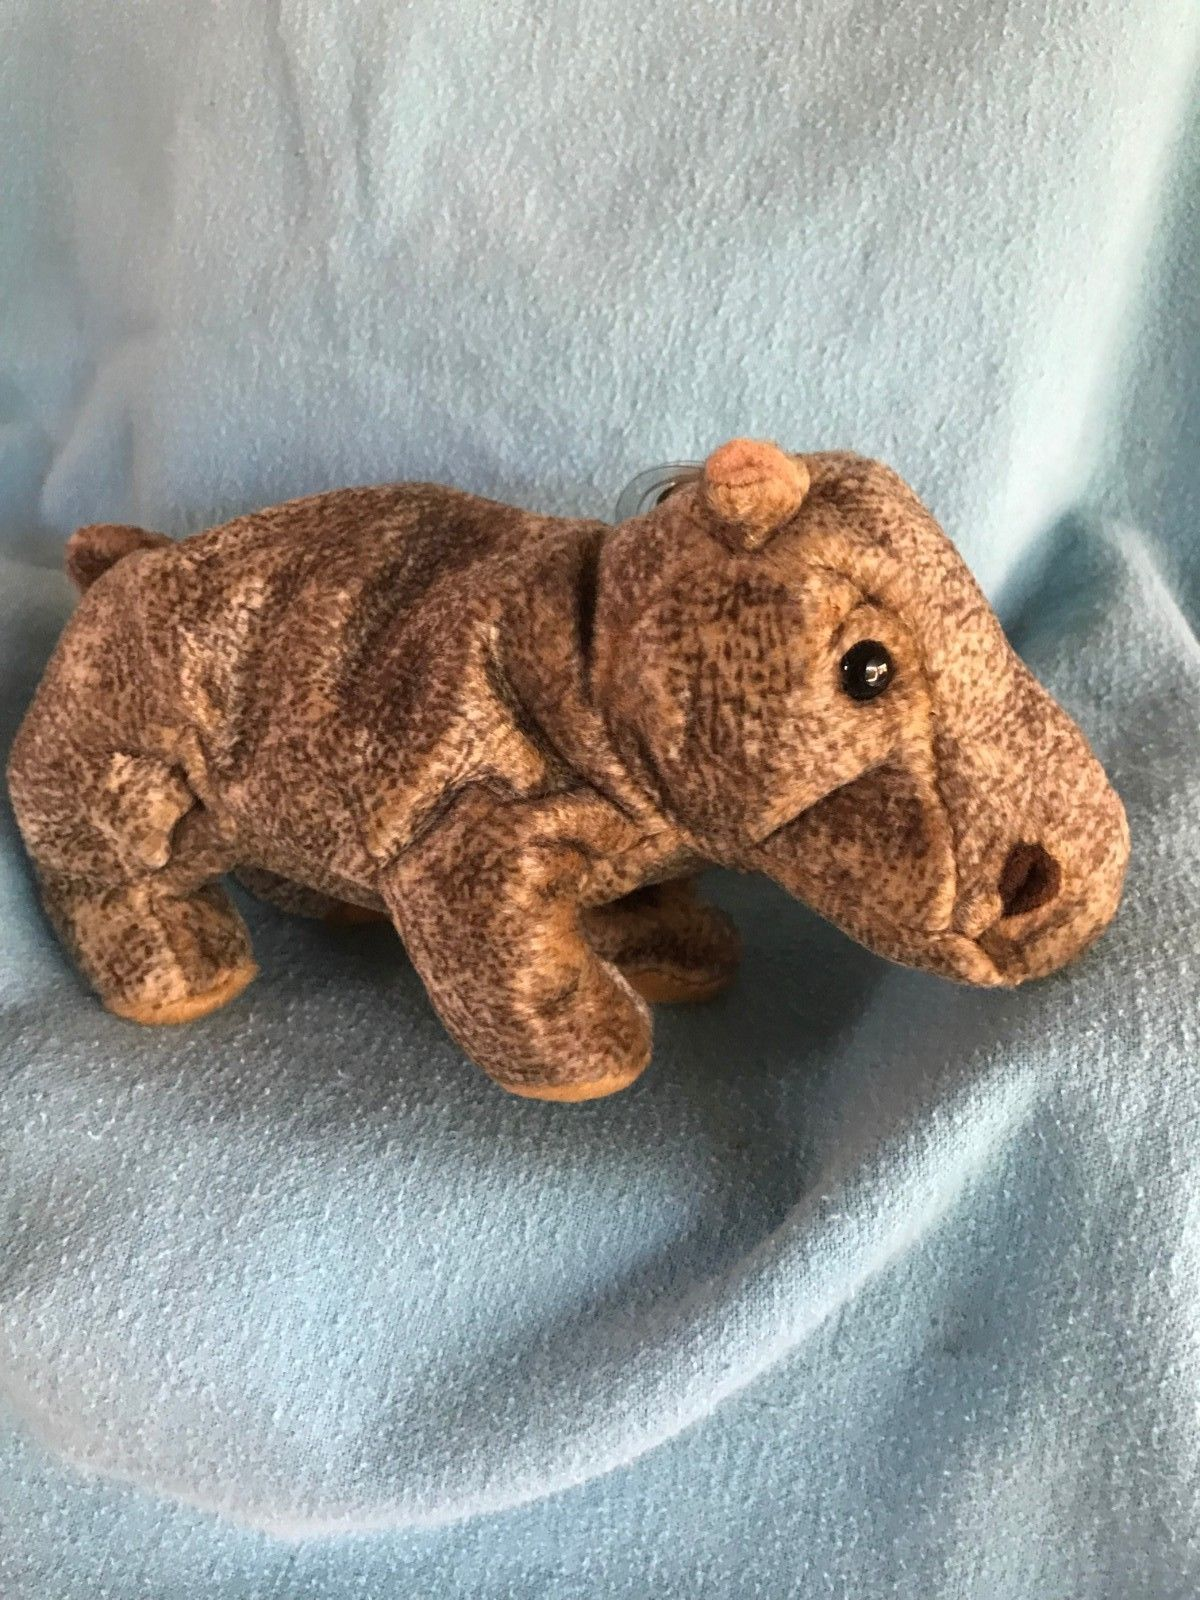 fa4d9b7aa61 TY Beanie Baby - TUBBO the Hippo (6 inch) - MWMTs Stuffed Animal Toy